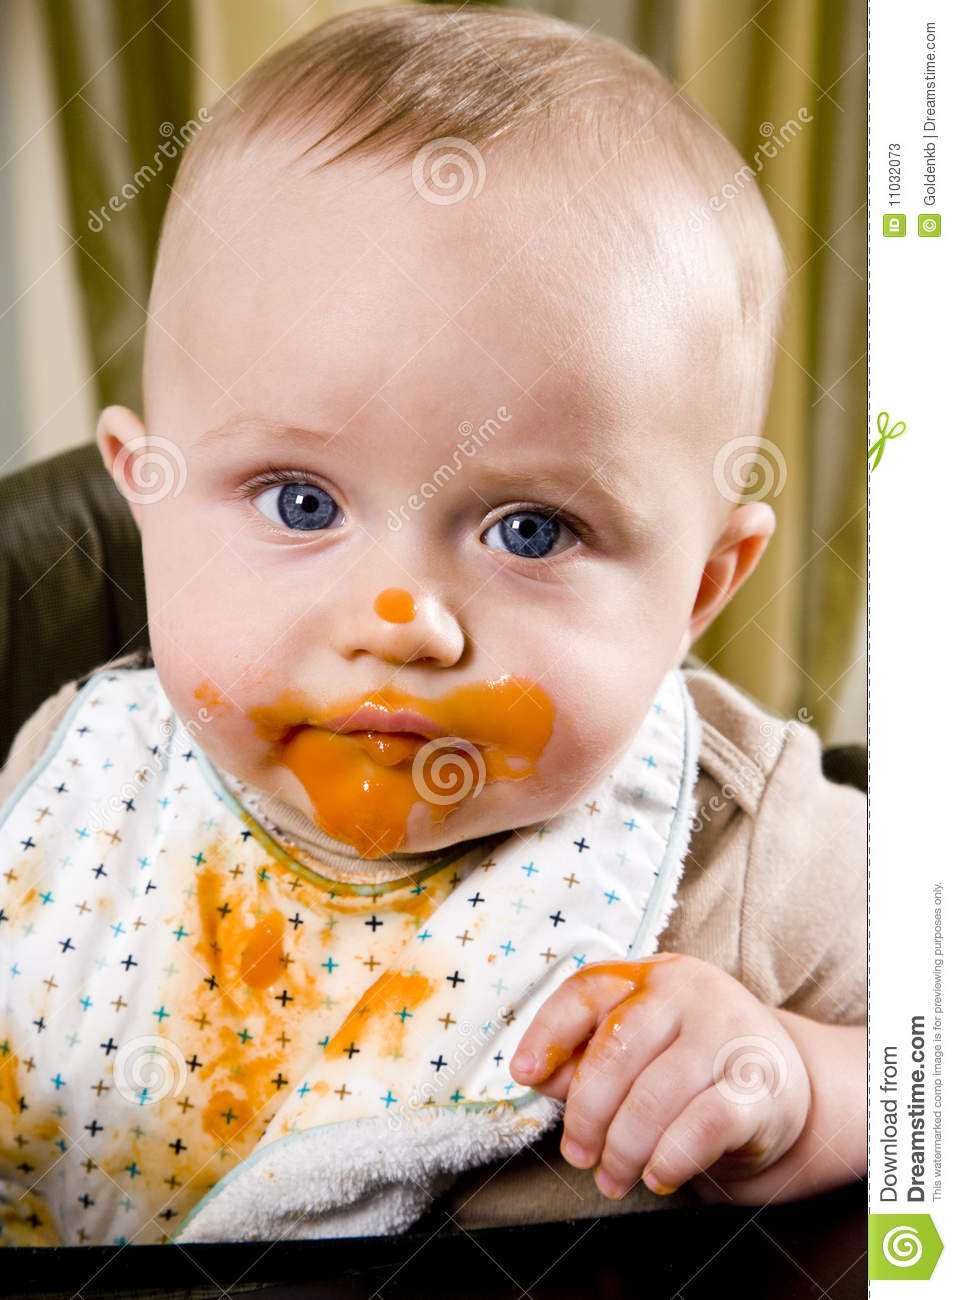 Messy Baby Wearing Bib After Eating Solid Food Stock